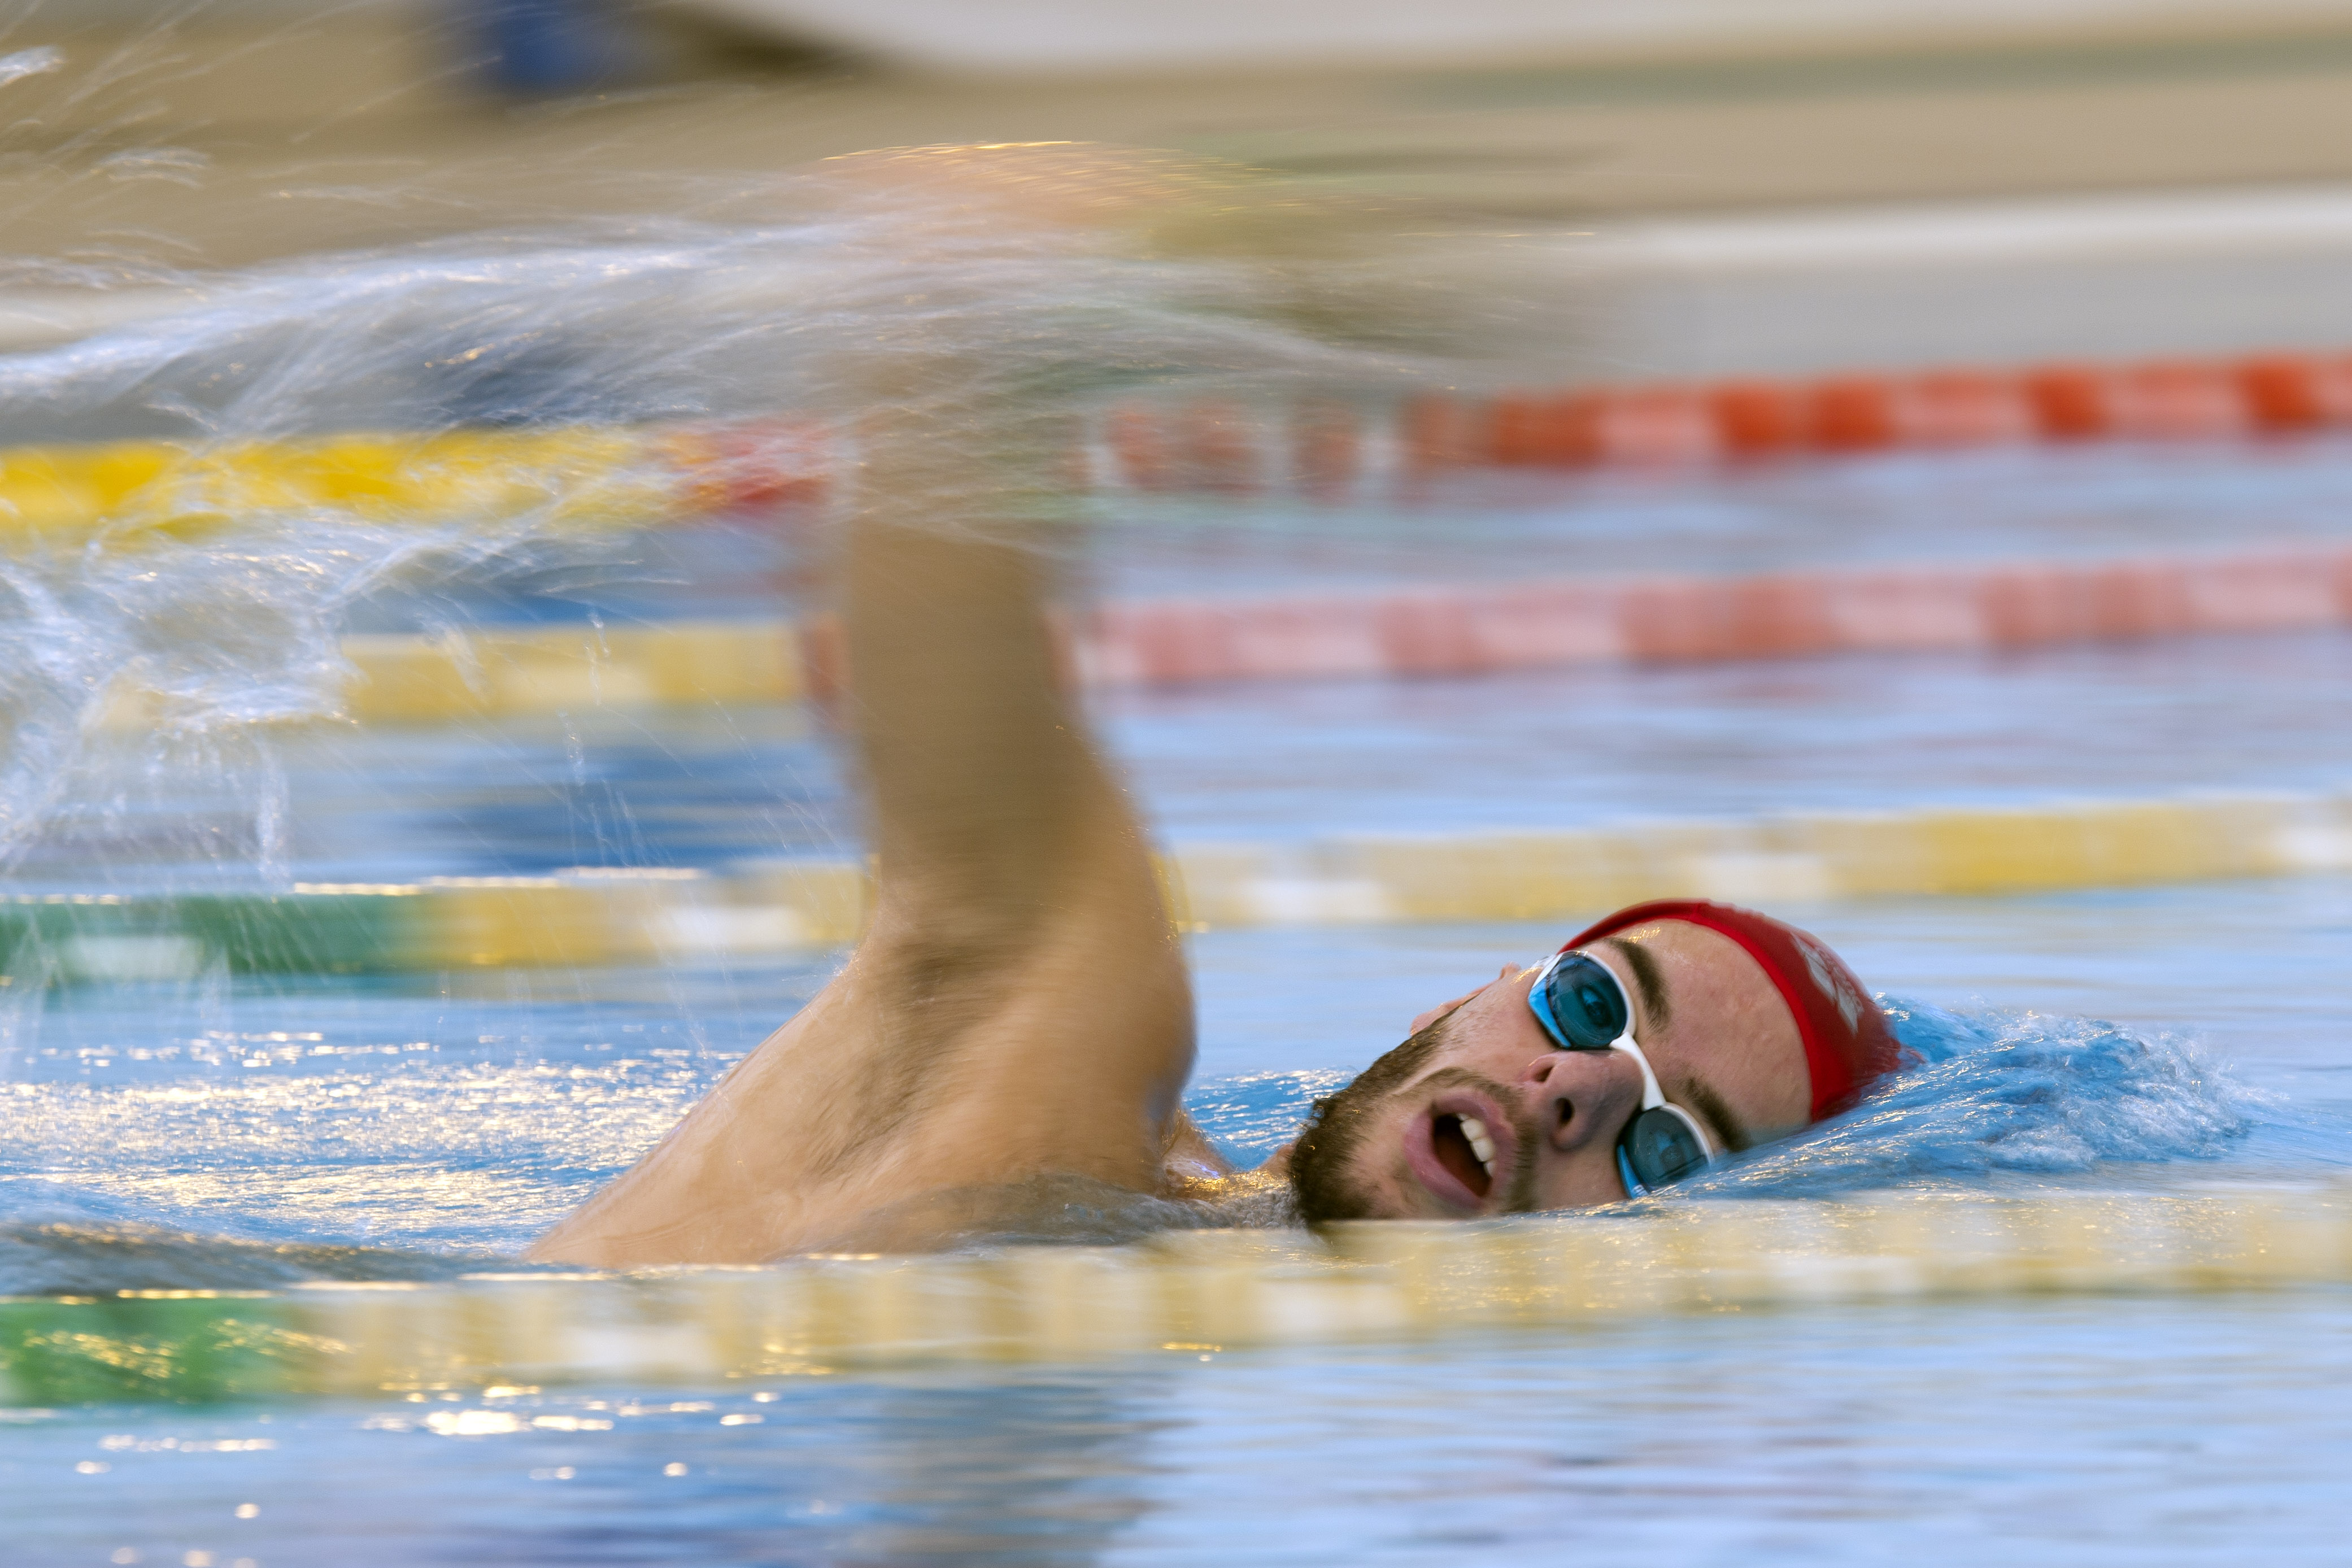 In this photo taken on Nov. 6, 2015, Italian swimmer Gregorio Paltrinieri trains in Rome. The Italian swimmer recovered from his initial shock over Sun Yang's last-minute no-show to win the longest race in the pool at this year's world championships. For